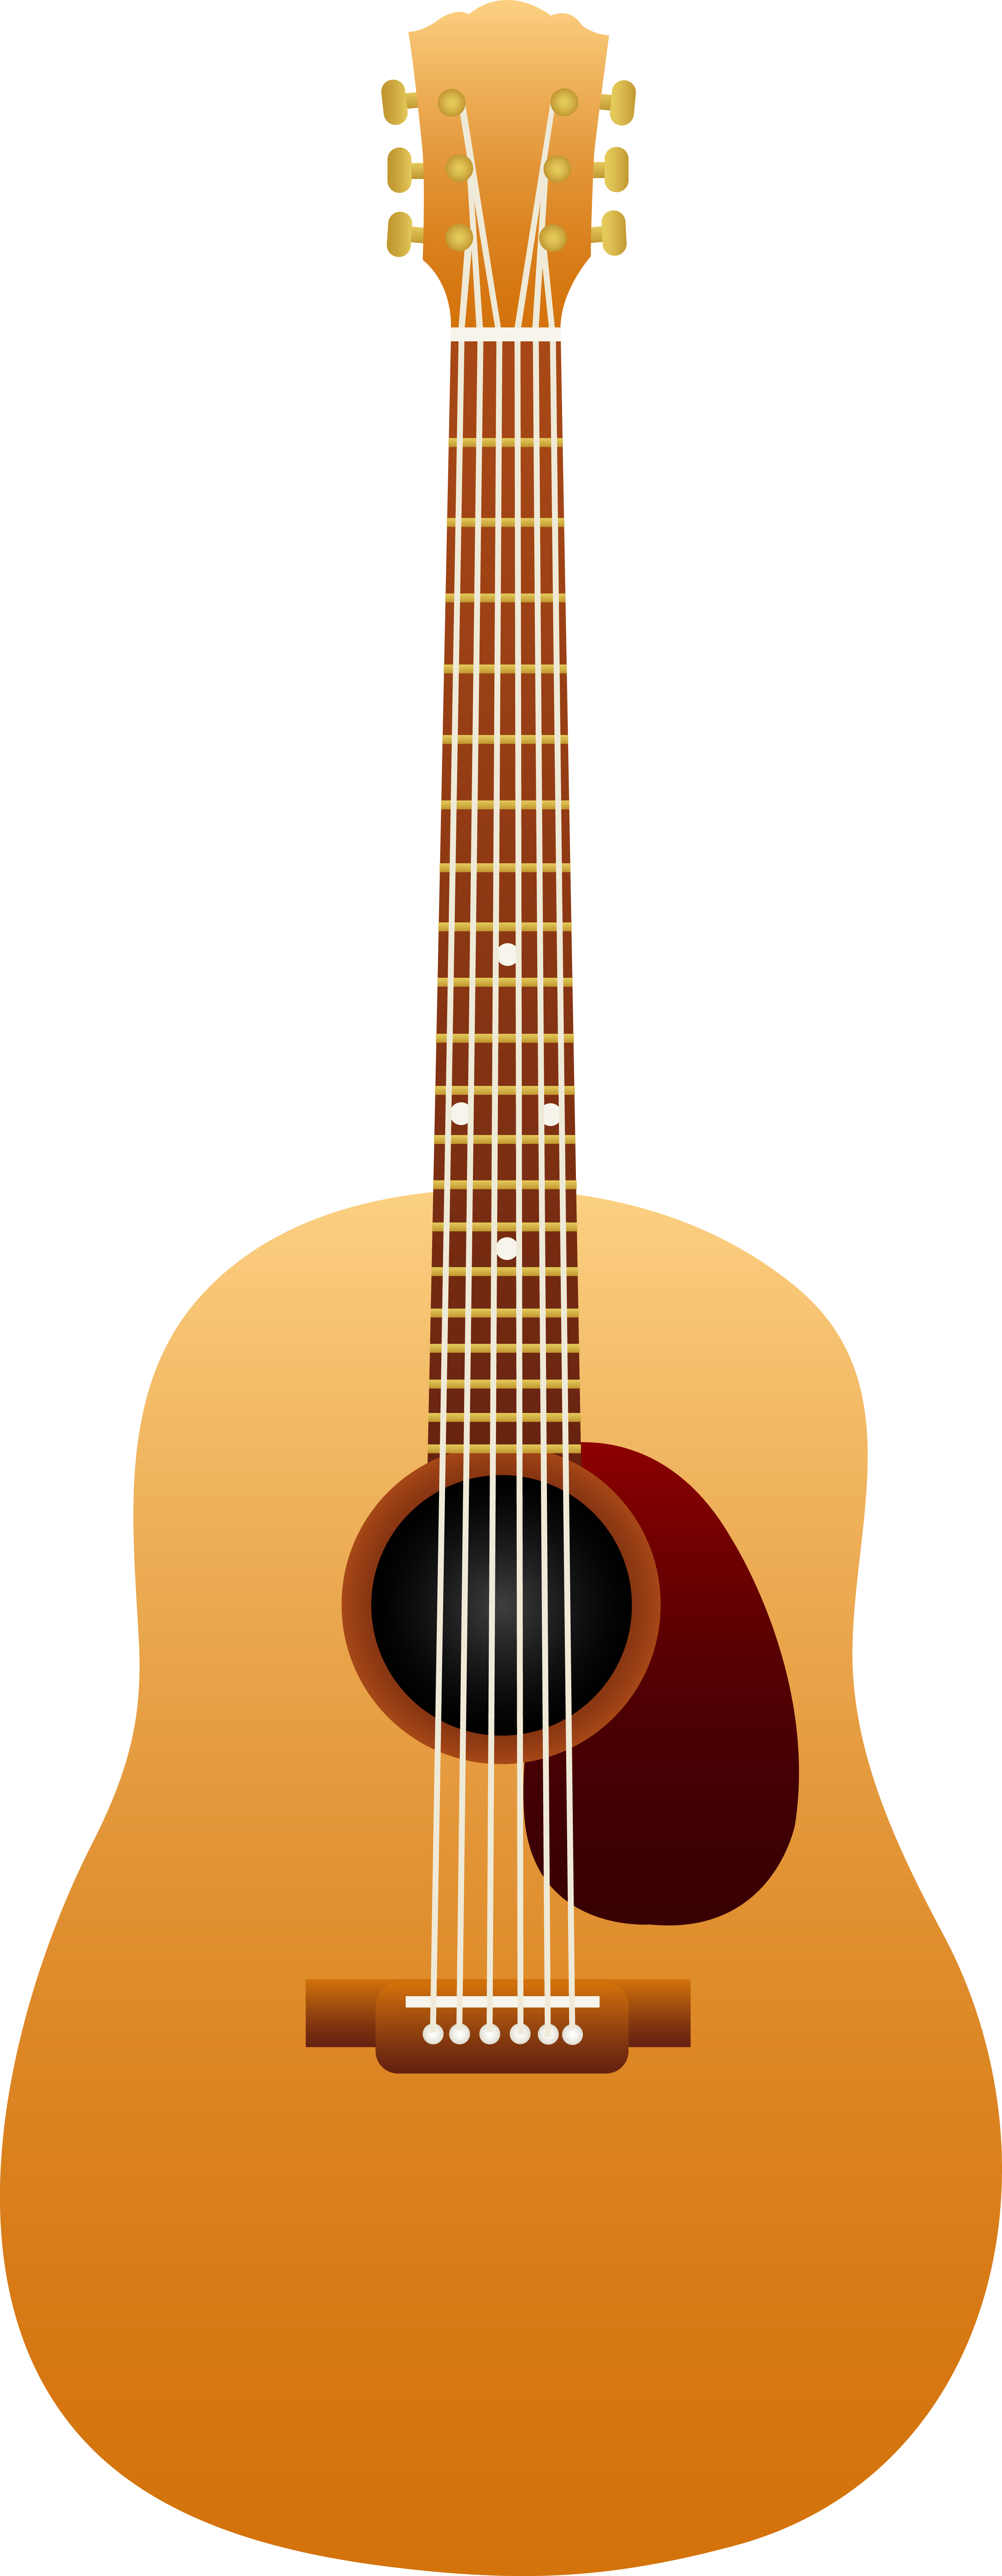 jpg freeuse stock Acoustic clipart classical guitar. Wooden free clip art